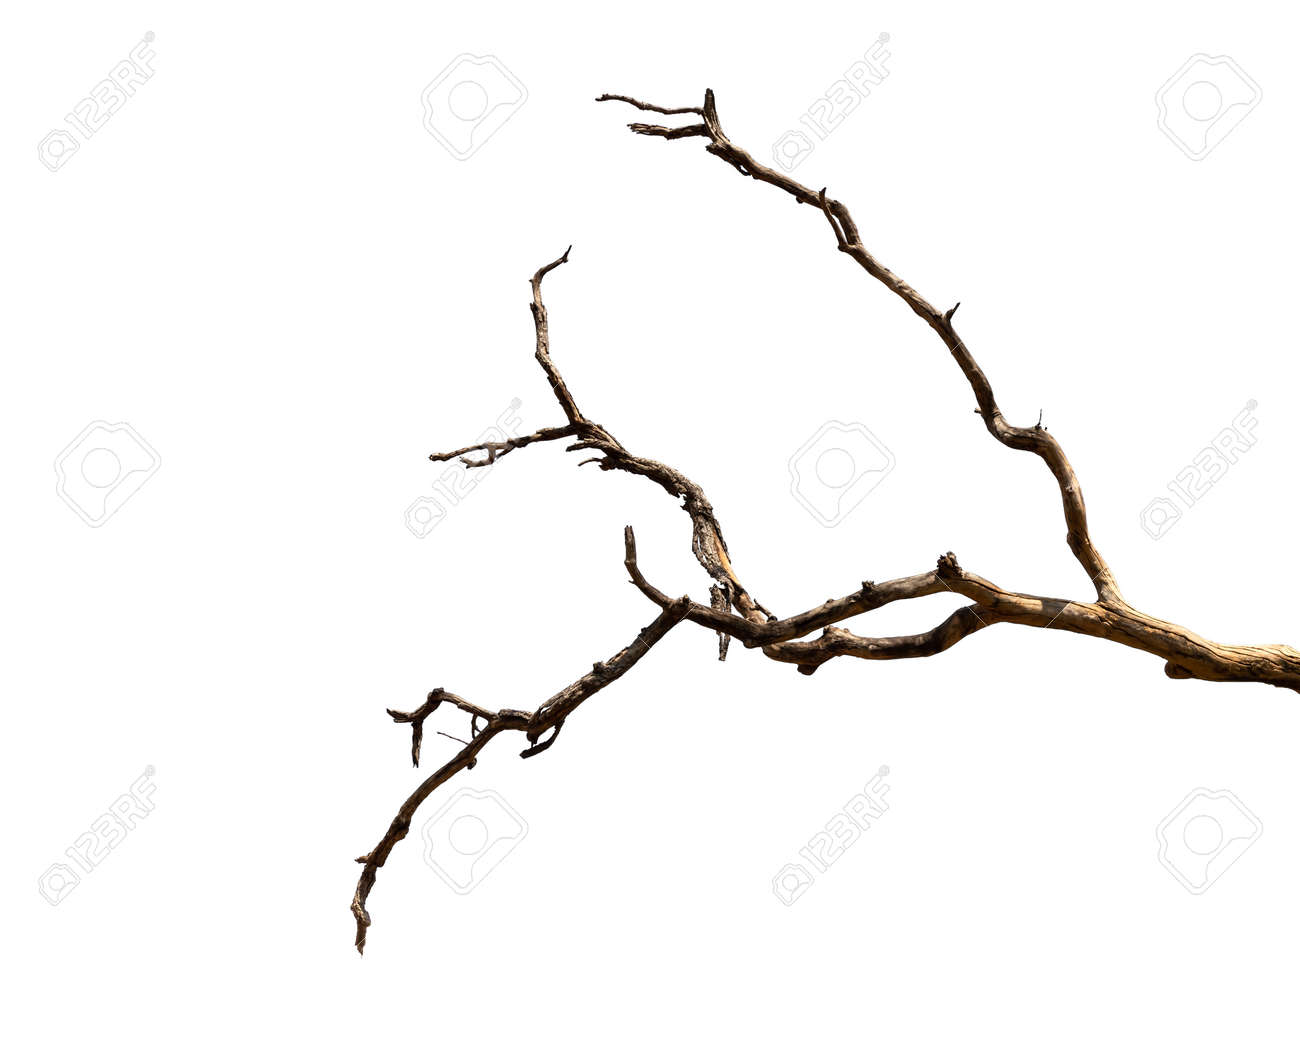 Dry branch of dead tree with cracked dark bark.beautiful dry branch of tree isolated on white background.Single old and dead tree.Dry wooden stick from the forest isolated on white background . - 140628286